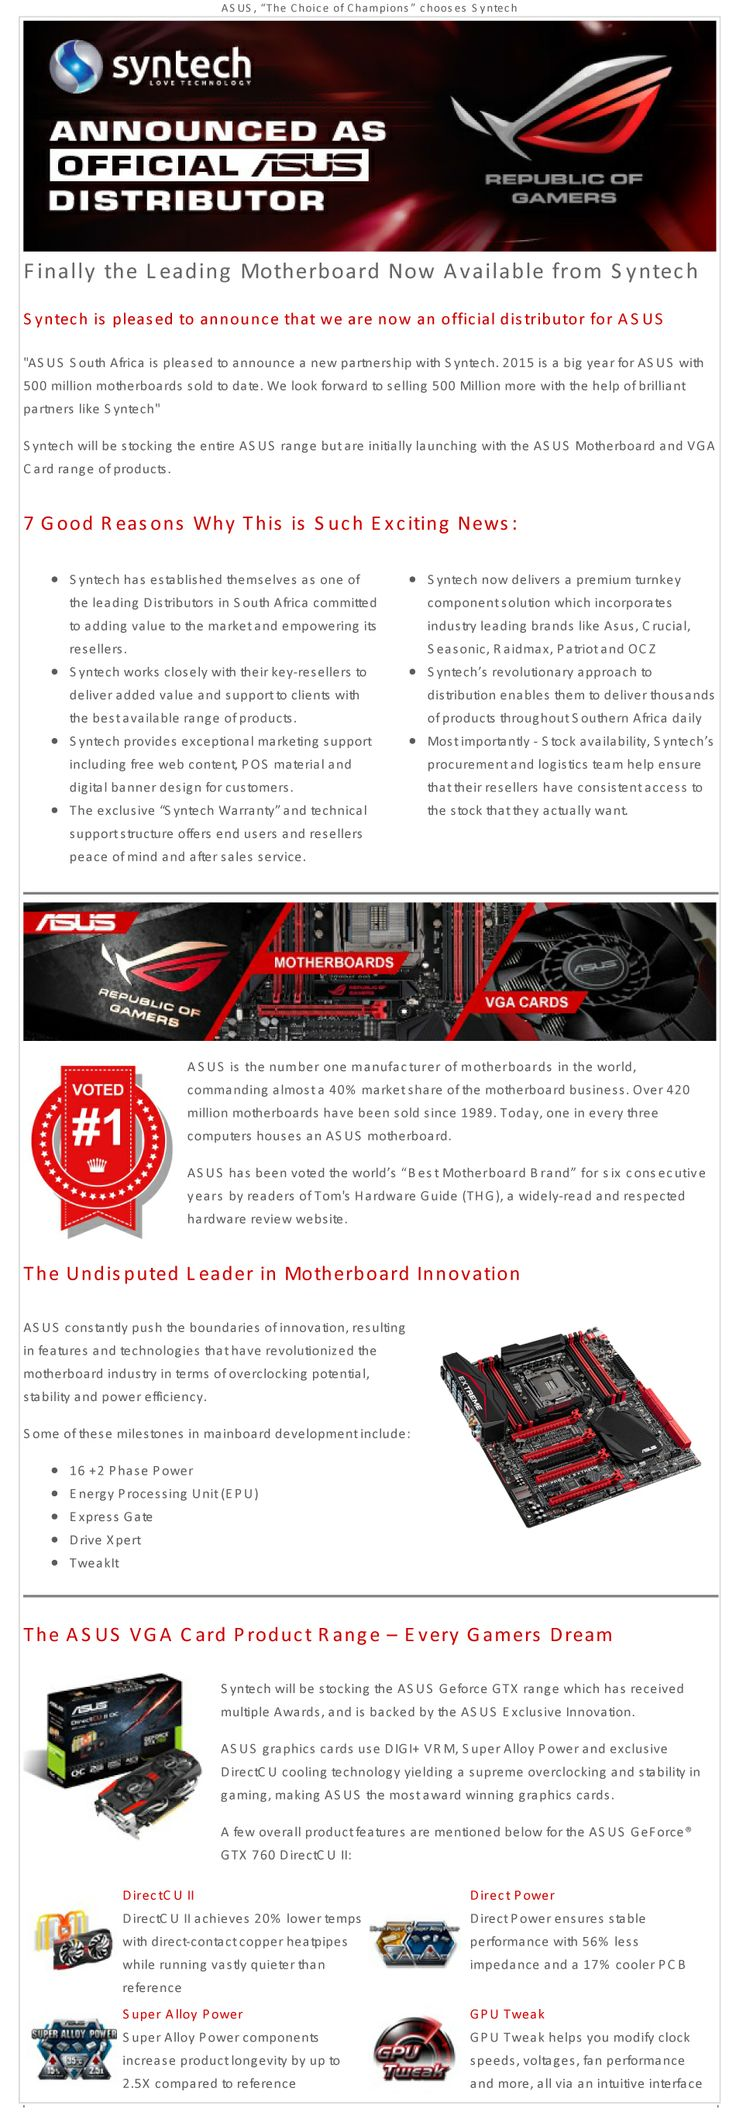 Syntech is pleased to announce that they are now an official distributor for ASUS Syntech_Announced_as_an_Asus_Distributor.jpg (950×2736)